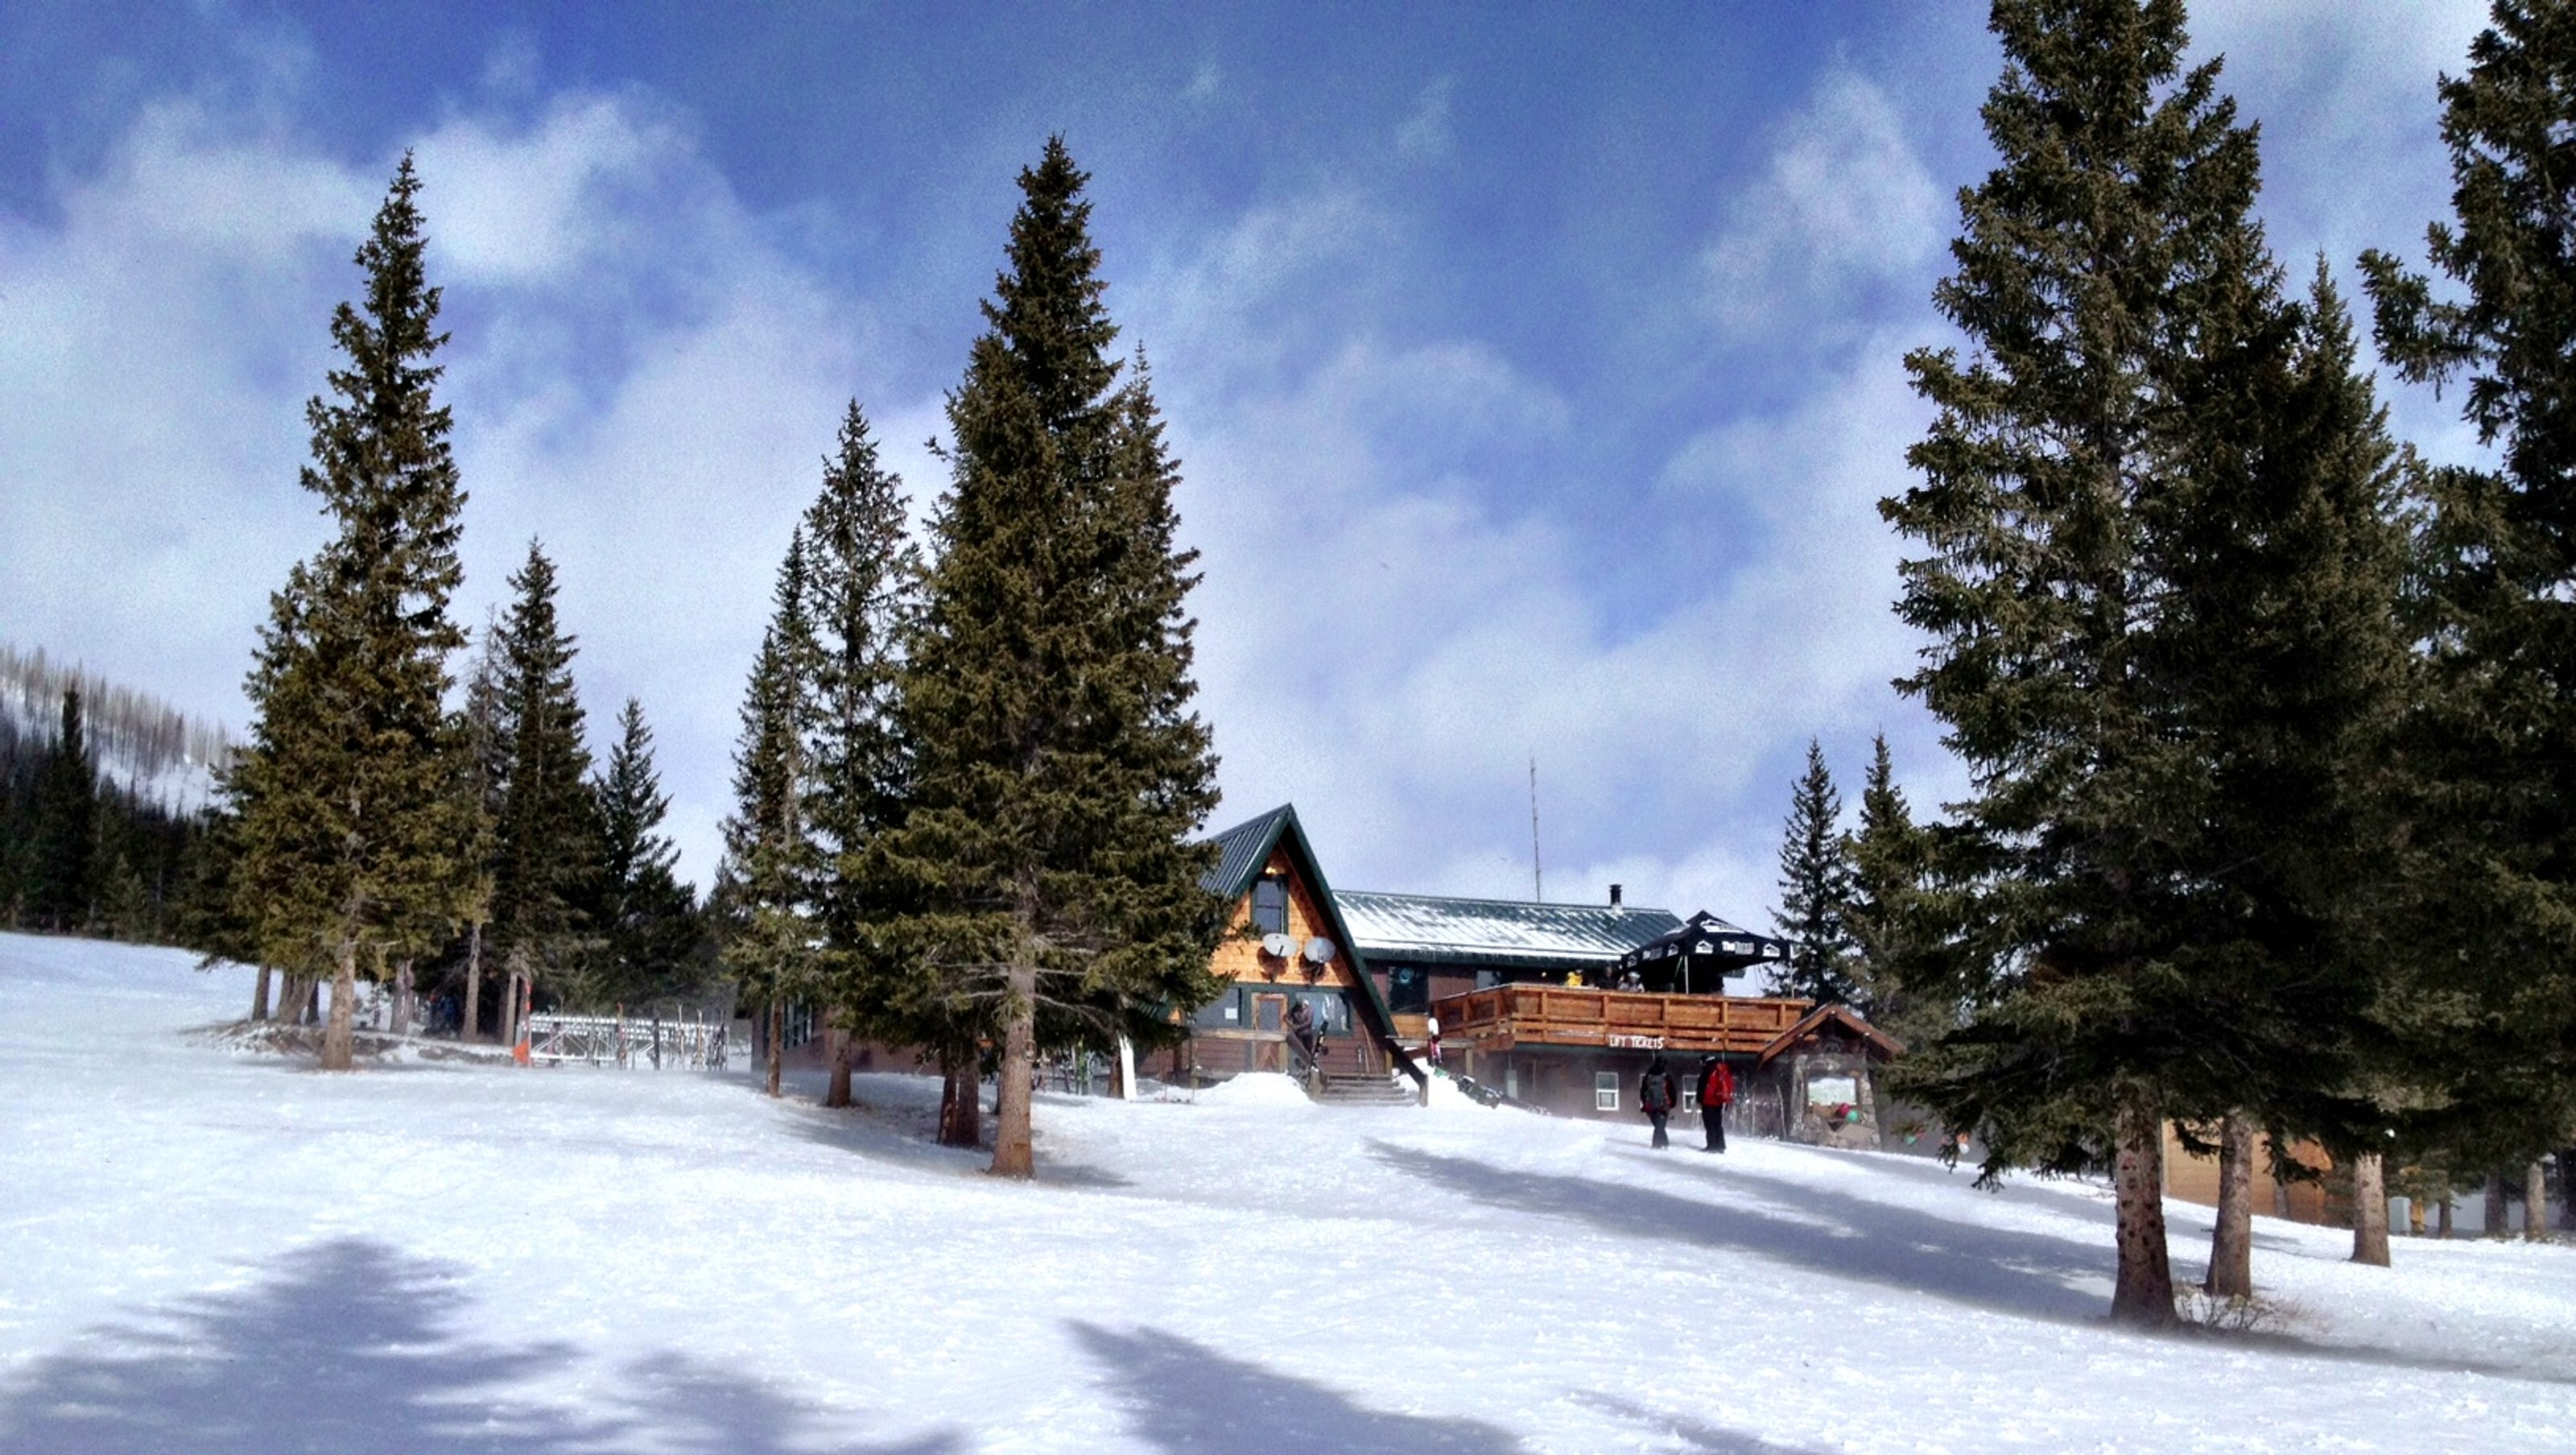 teton pass ski resort for sale, community looks at options to save it